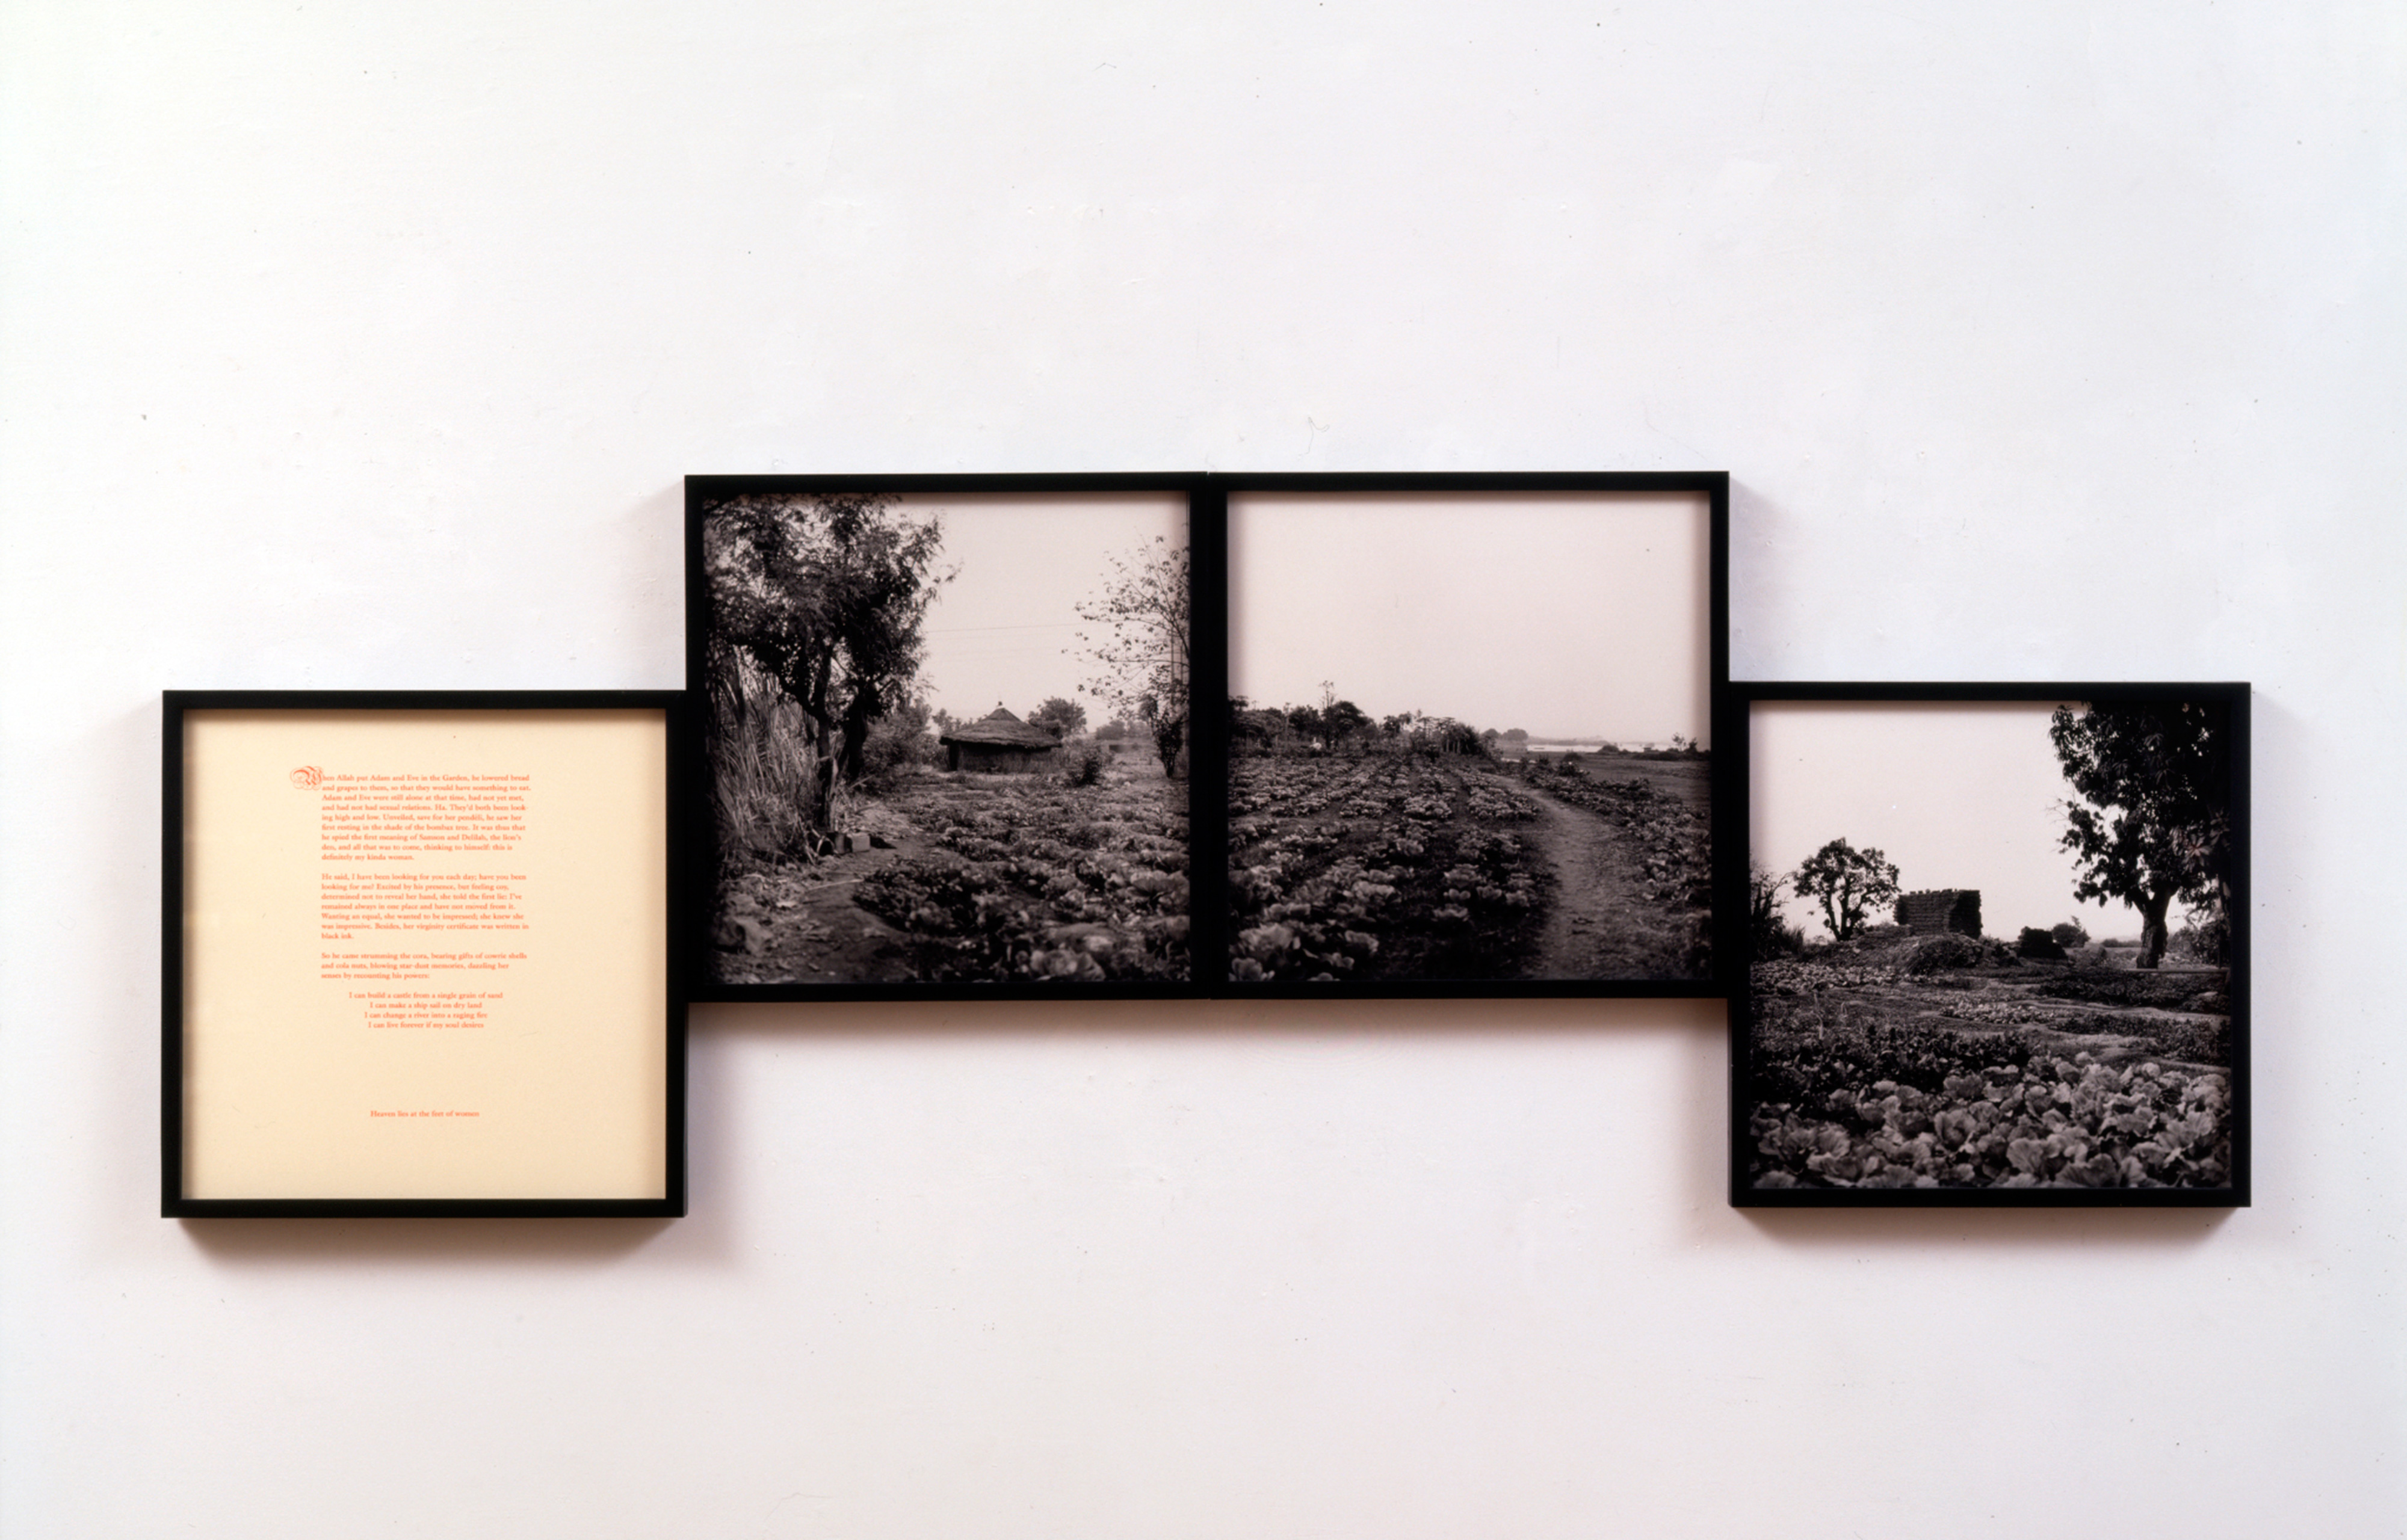 Galerie Barbara Thumm \ Carrie Mae Weems: In the Garden (CMW-93-002)) \ In the Garden (1993)